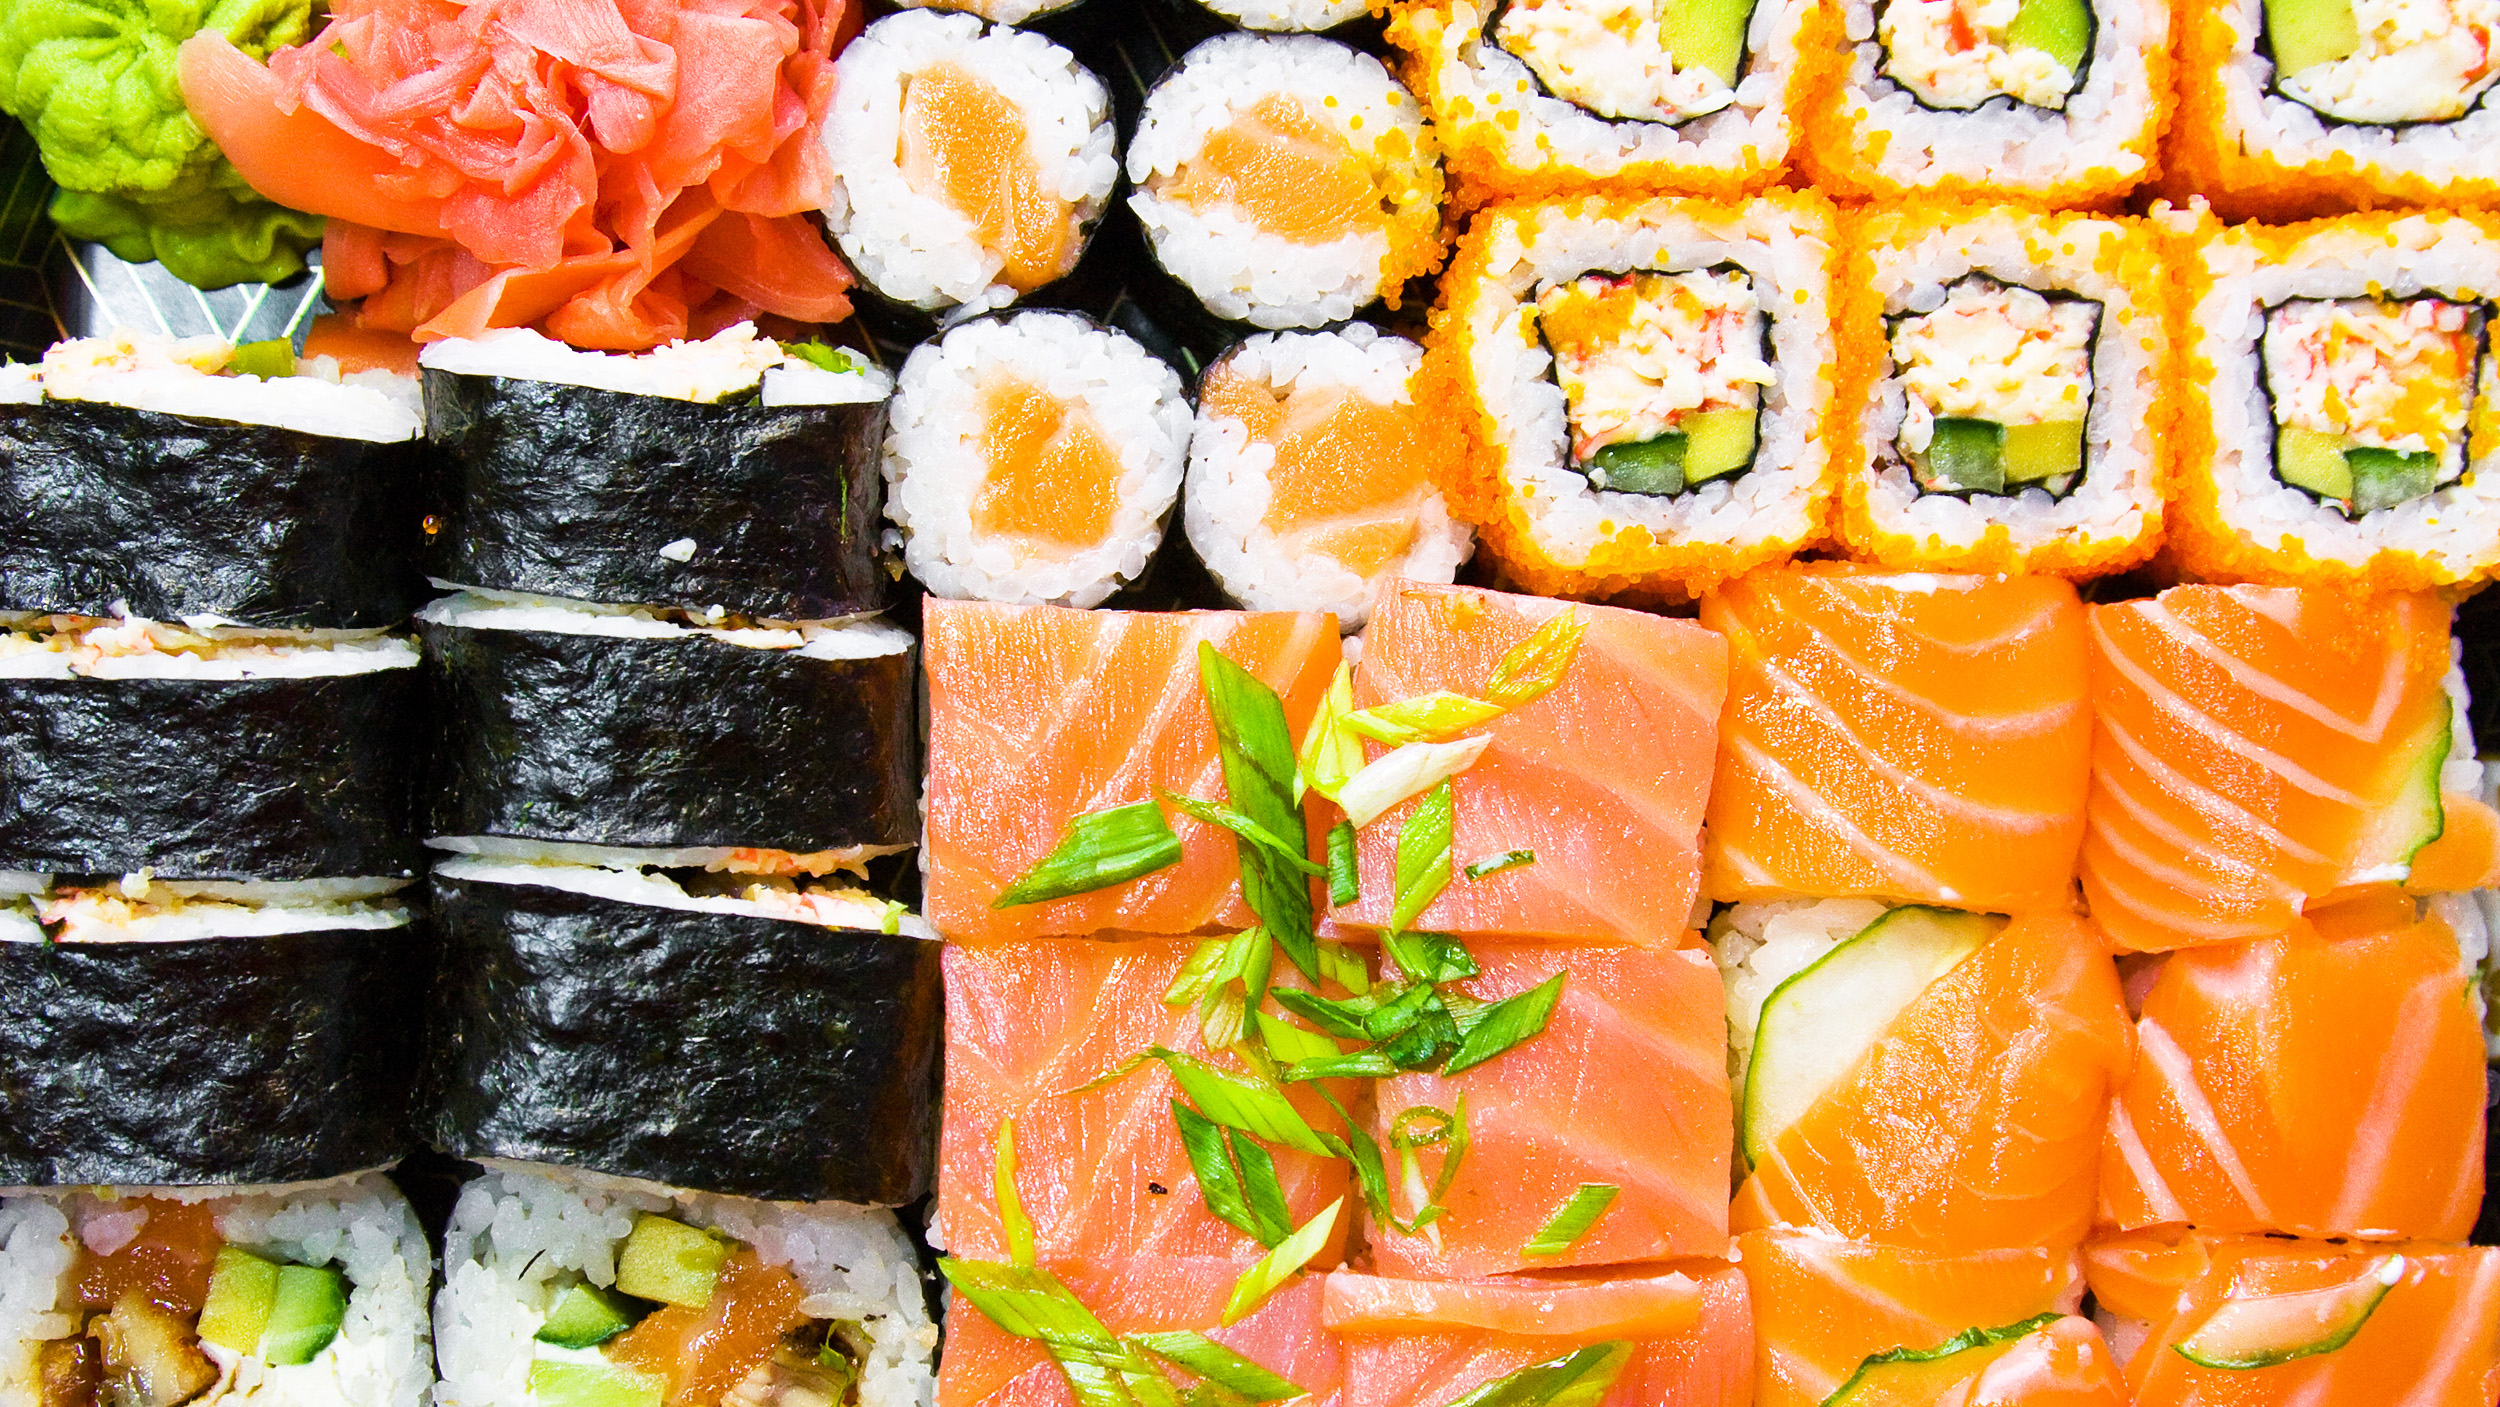 Man gets parasite infection after eating sushi